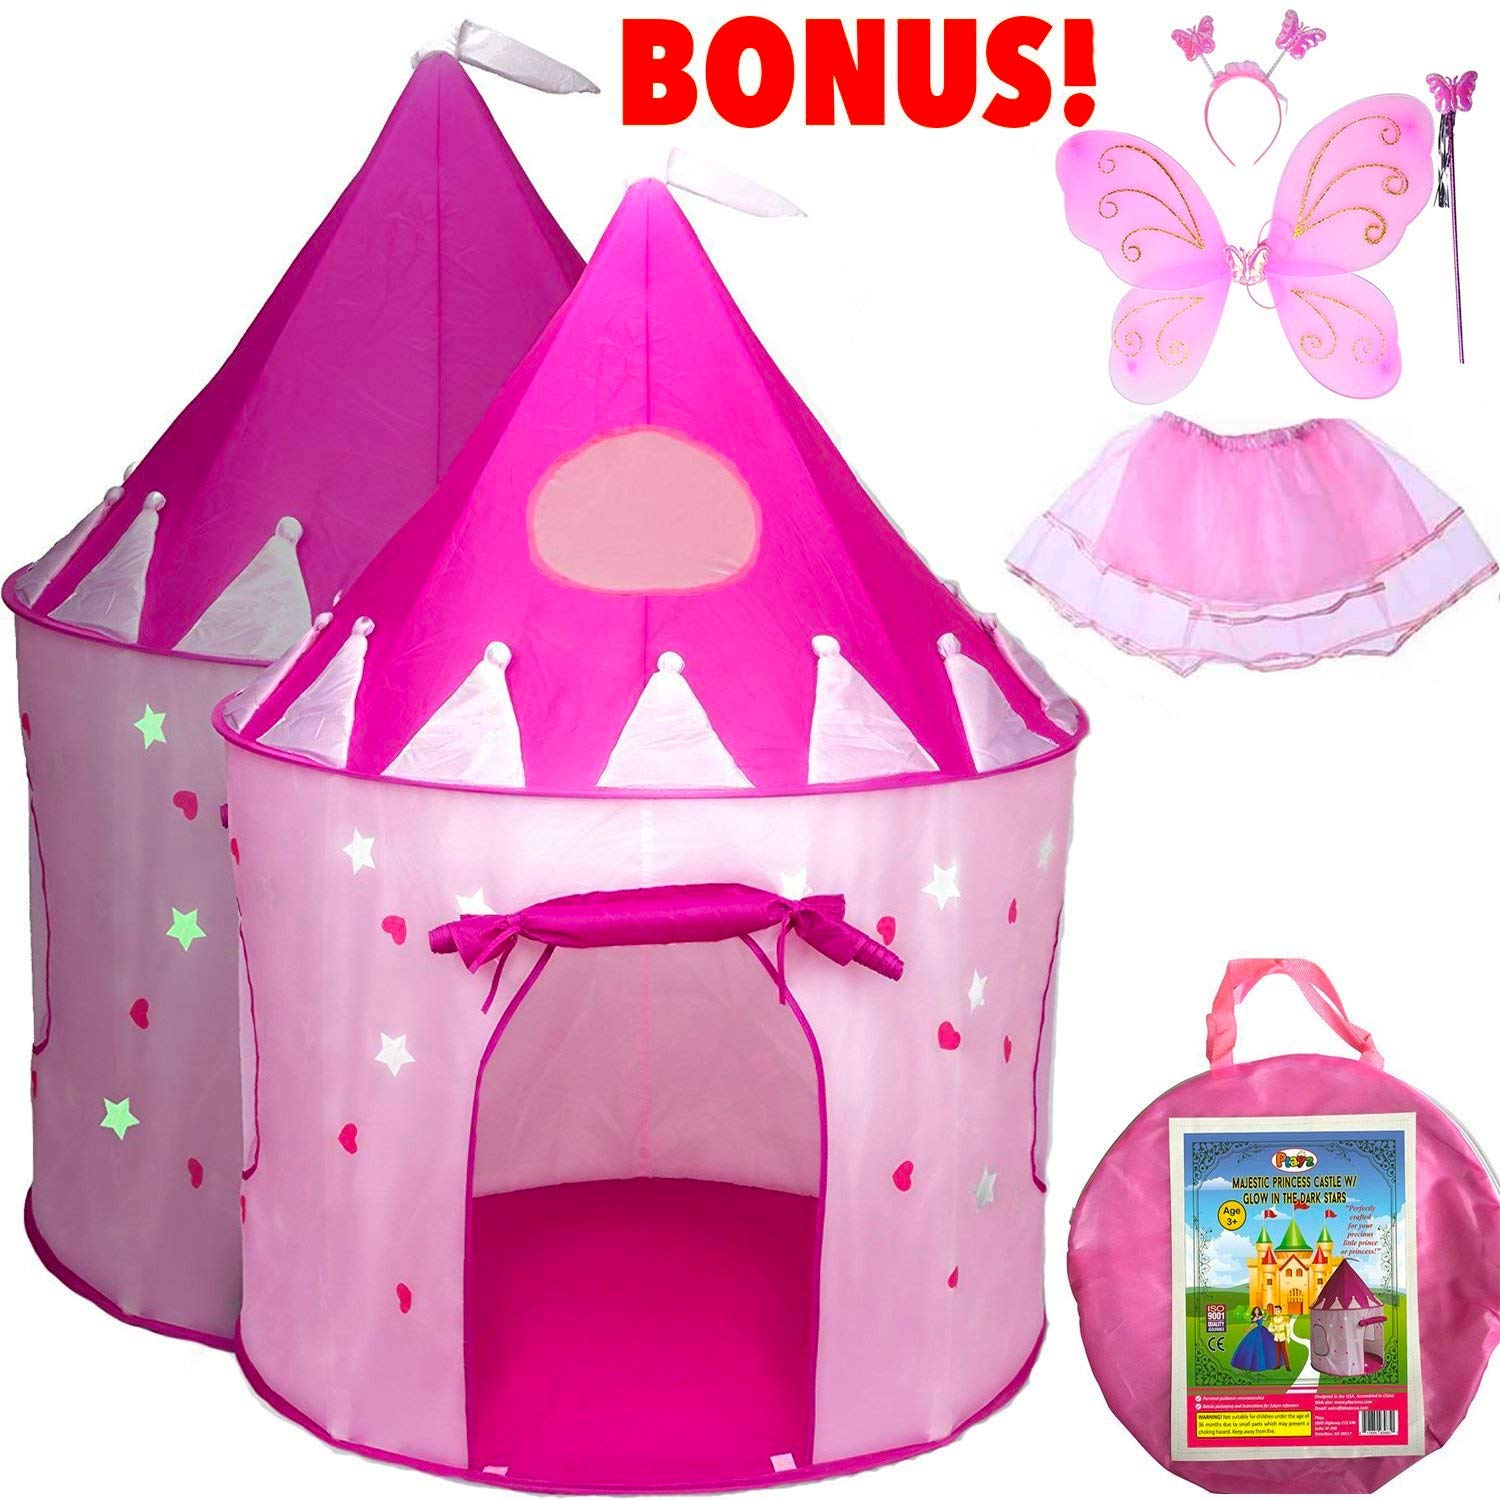 Life Size Princess Castle Girls Pop Up Play Tent & Dress Up Costume Bundle - Playhouse Gift for Girls & Toddler for Indoor & Outdoor Use with Pink Fairy Tale Carrying Bag & Glow in The Dark Stars by Playz